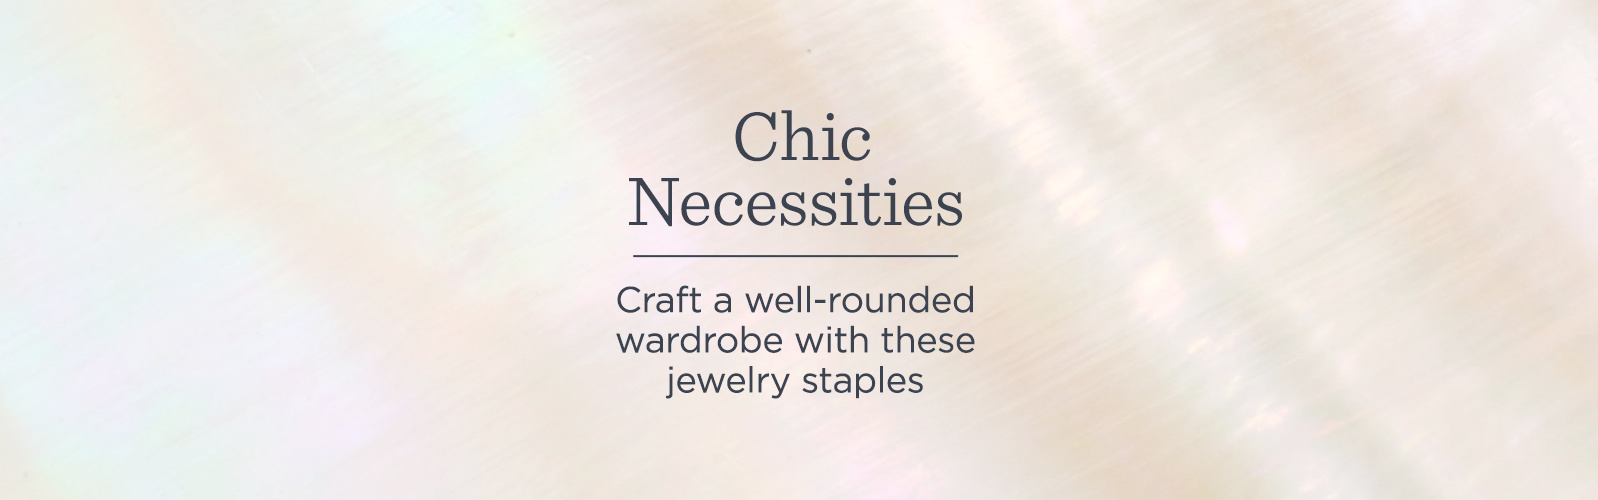 Chic Necessities - Craft a well-rounded wardrobe with these jewelry staples